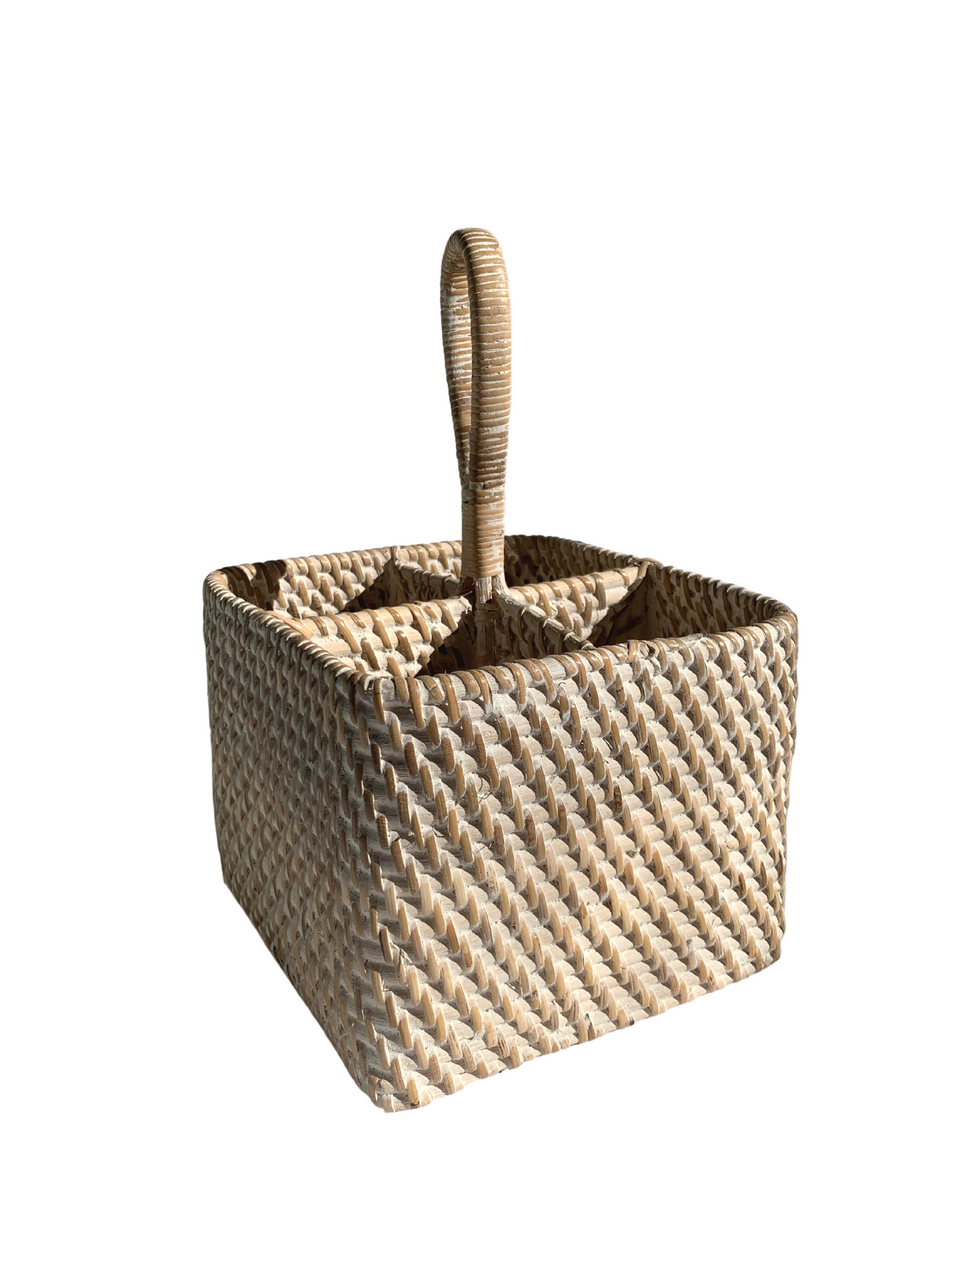 Cutlery Caddy - White Wash Rattan